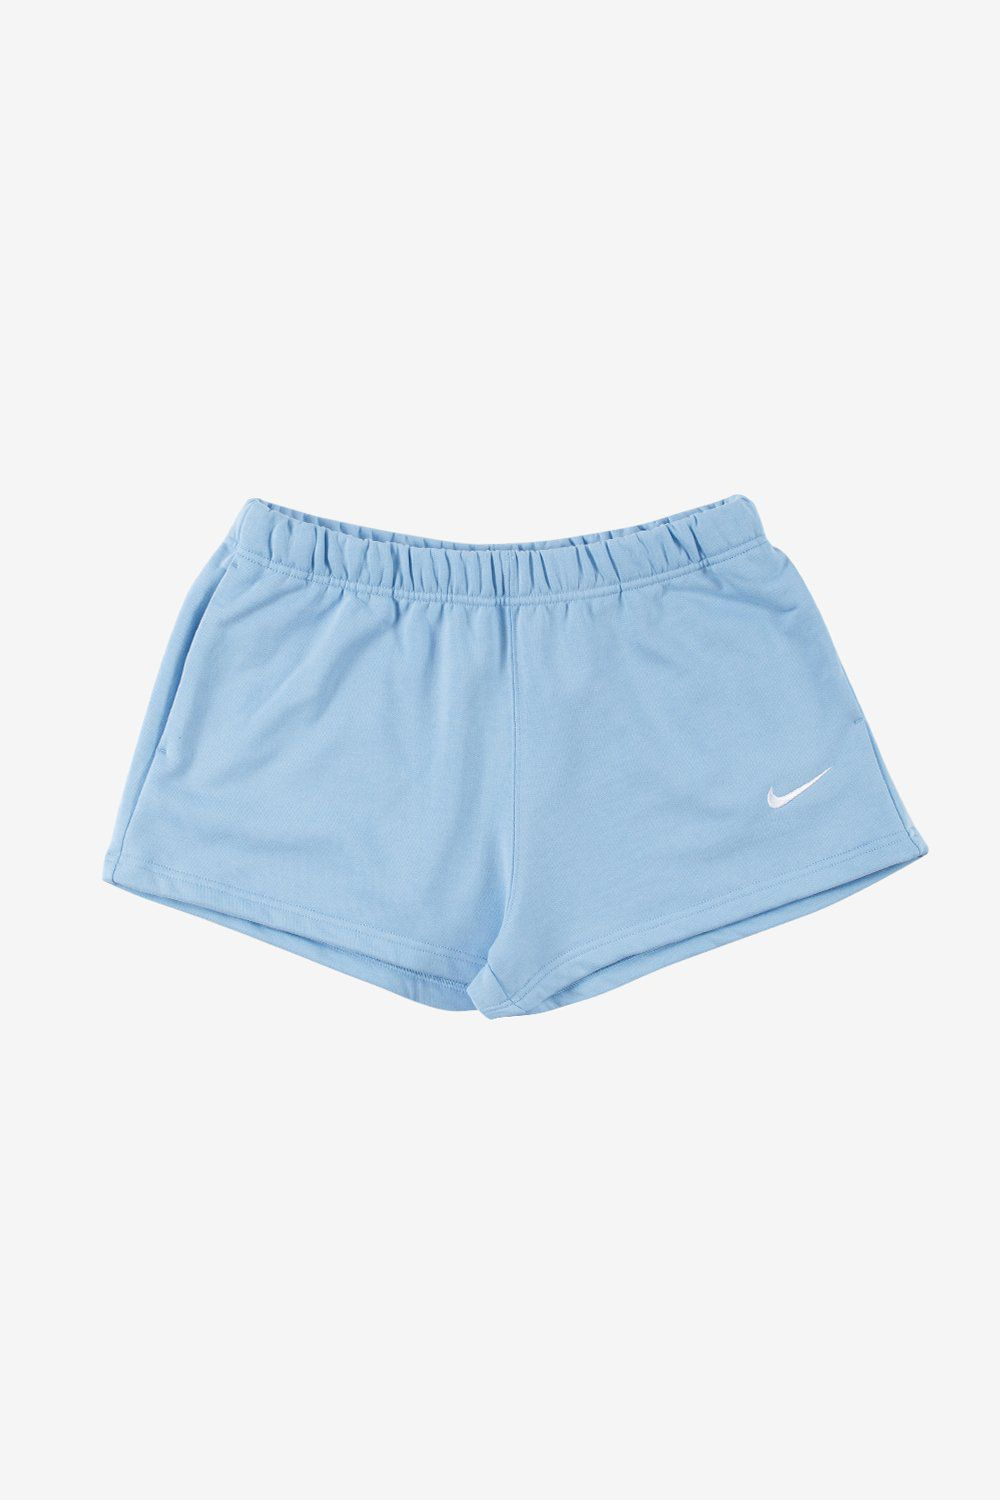 Nike Apparel NikeLab Women's Fleece Shorts